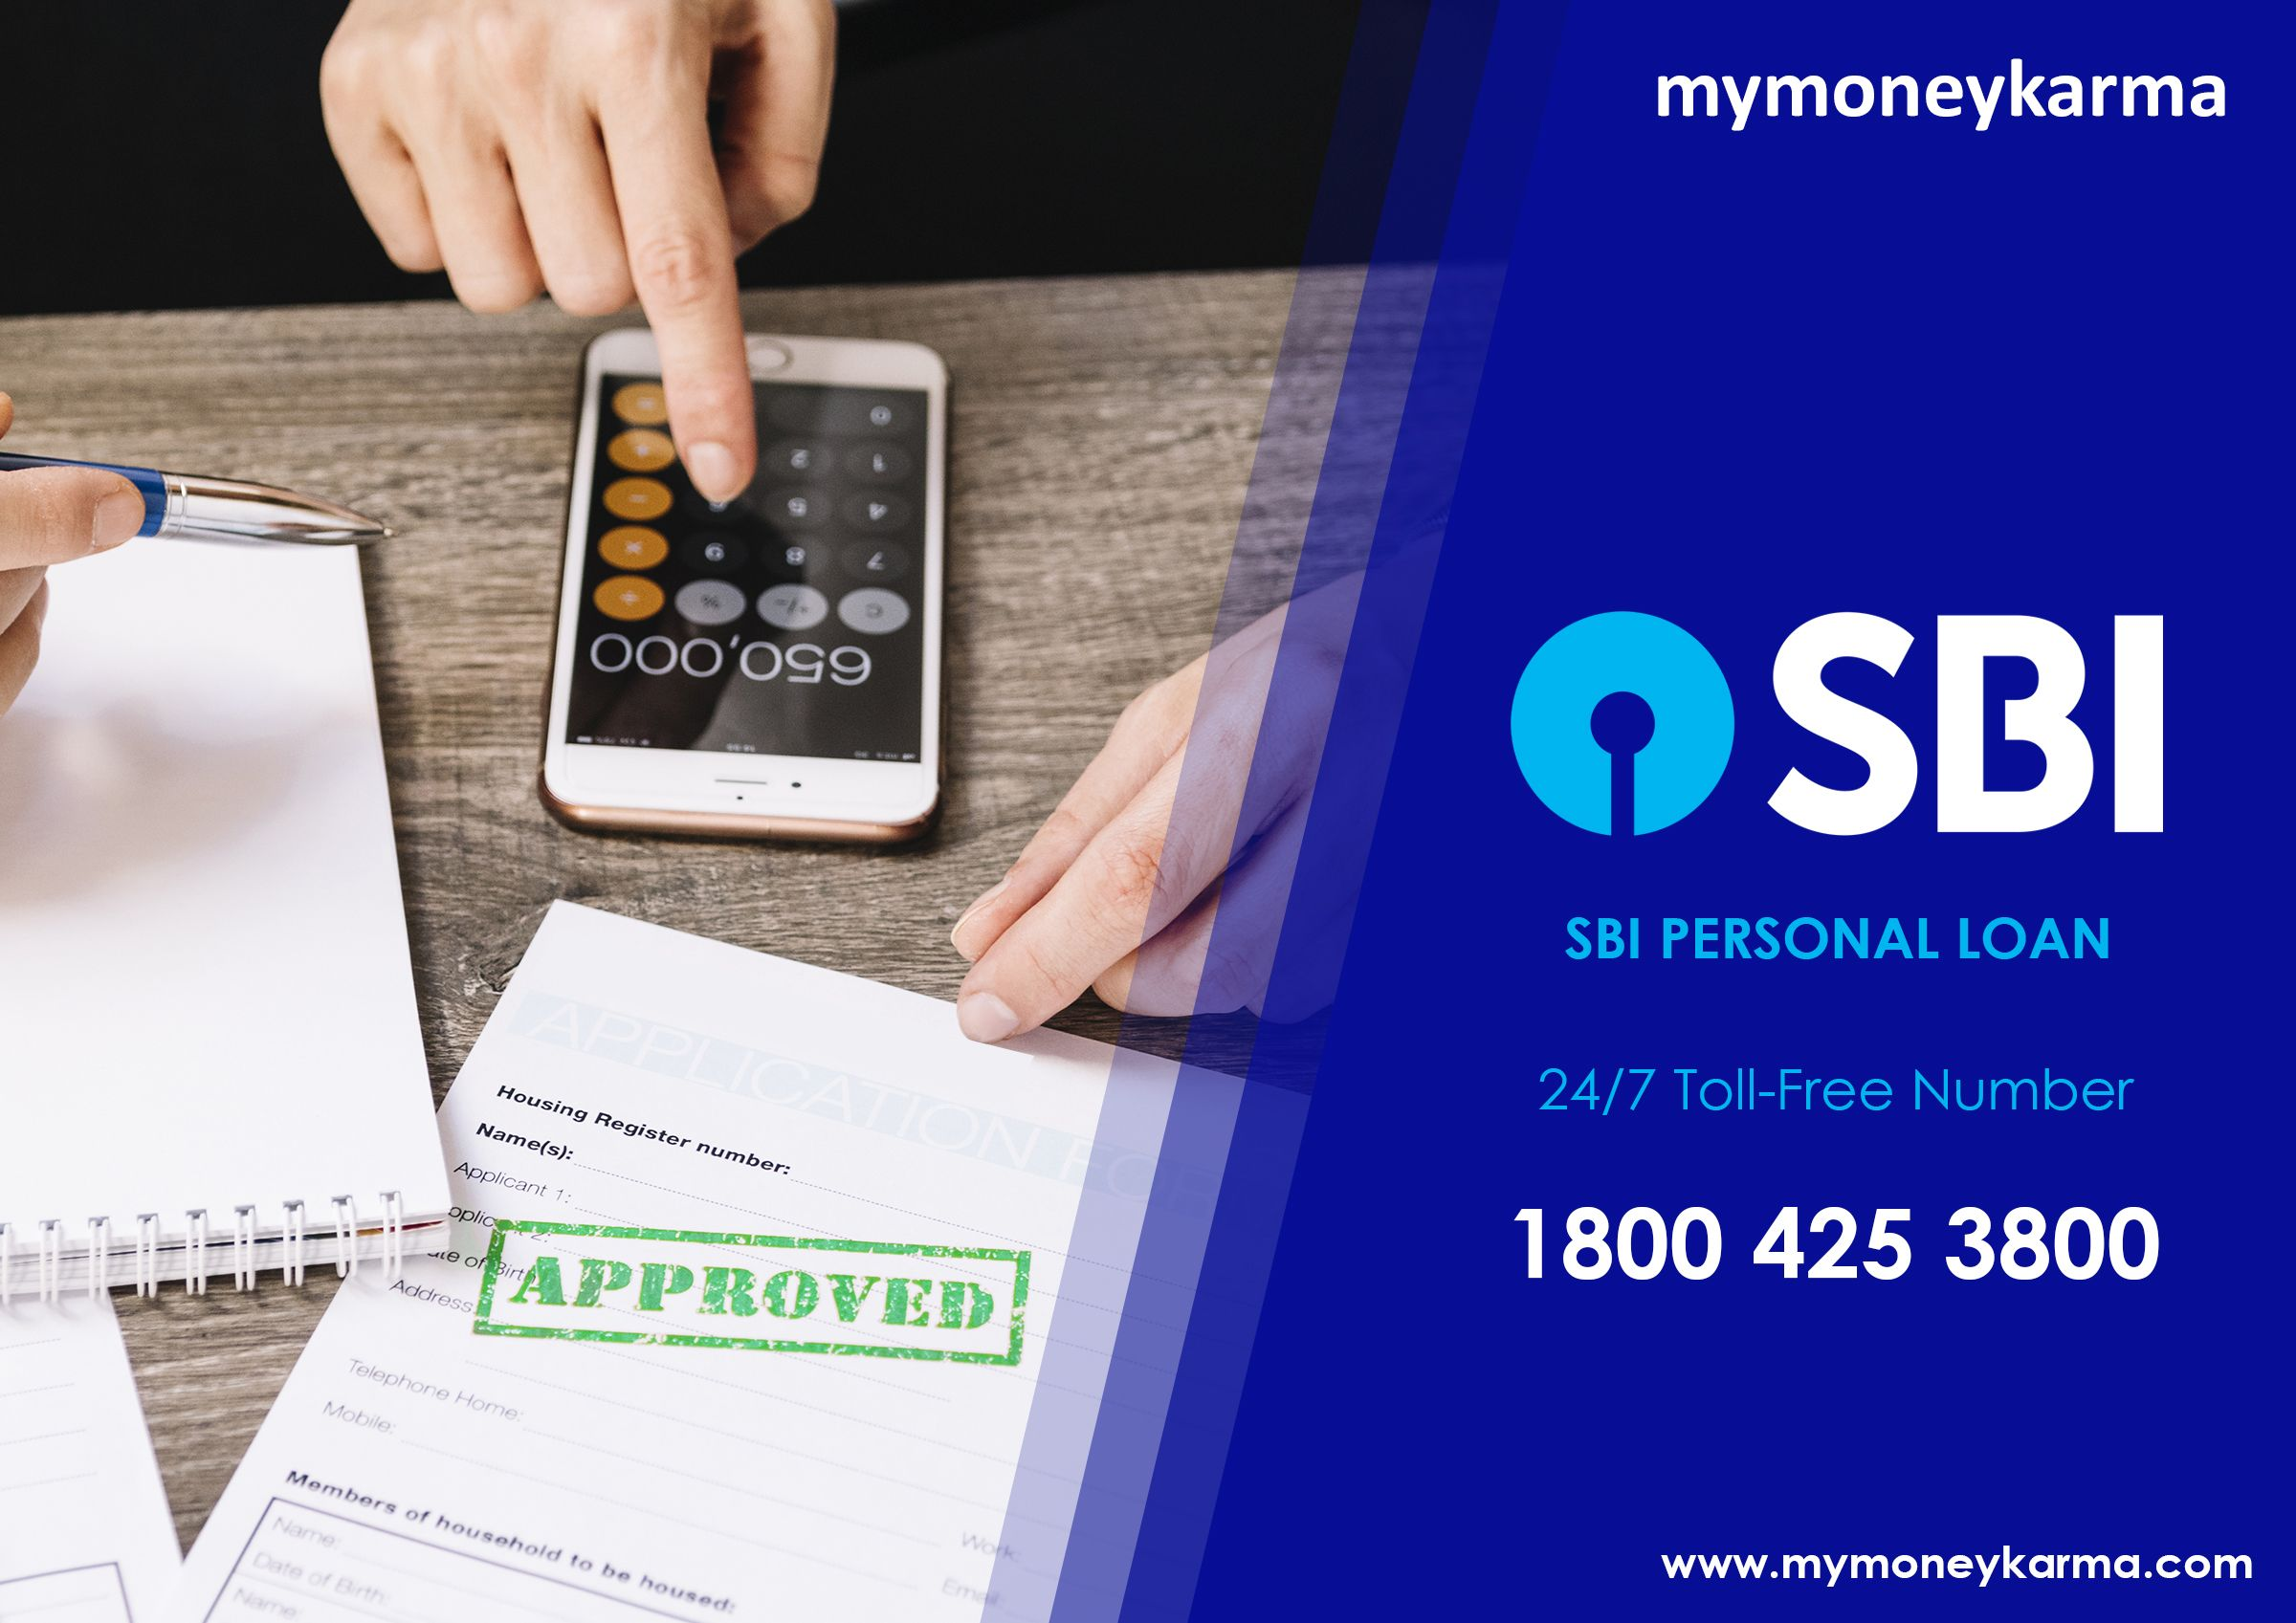 Applying For Sbi Personal Loan Here Is The List Of Documents That You Will Require Mymoneykarma Loan Documents Personal Loans Loan Person